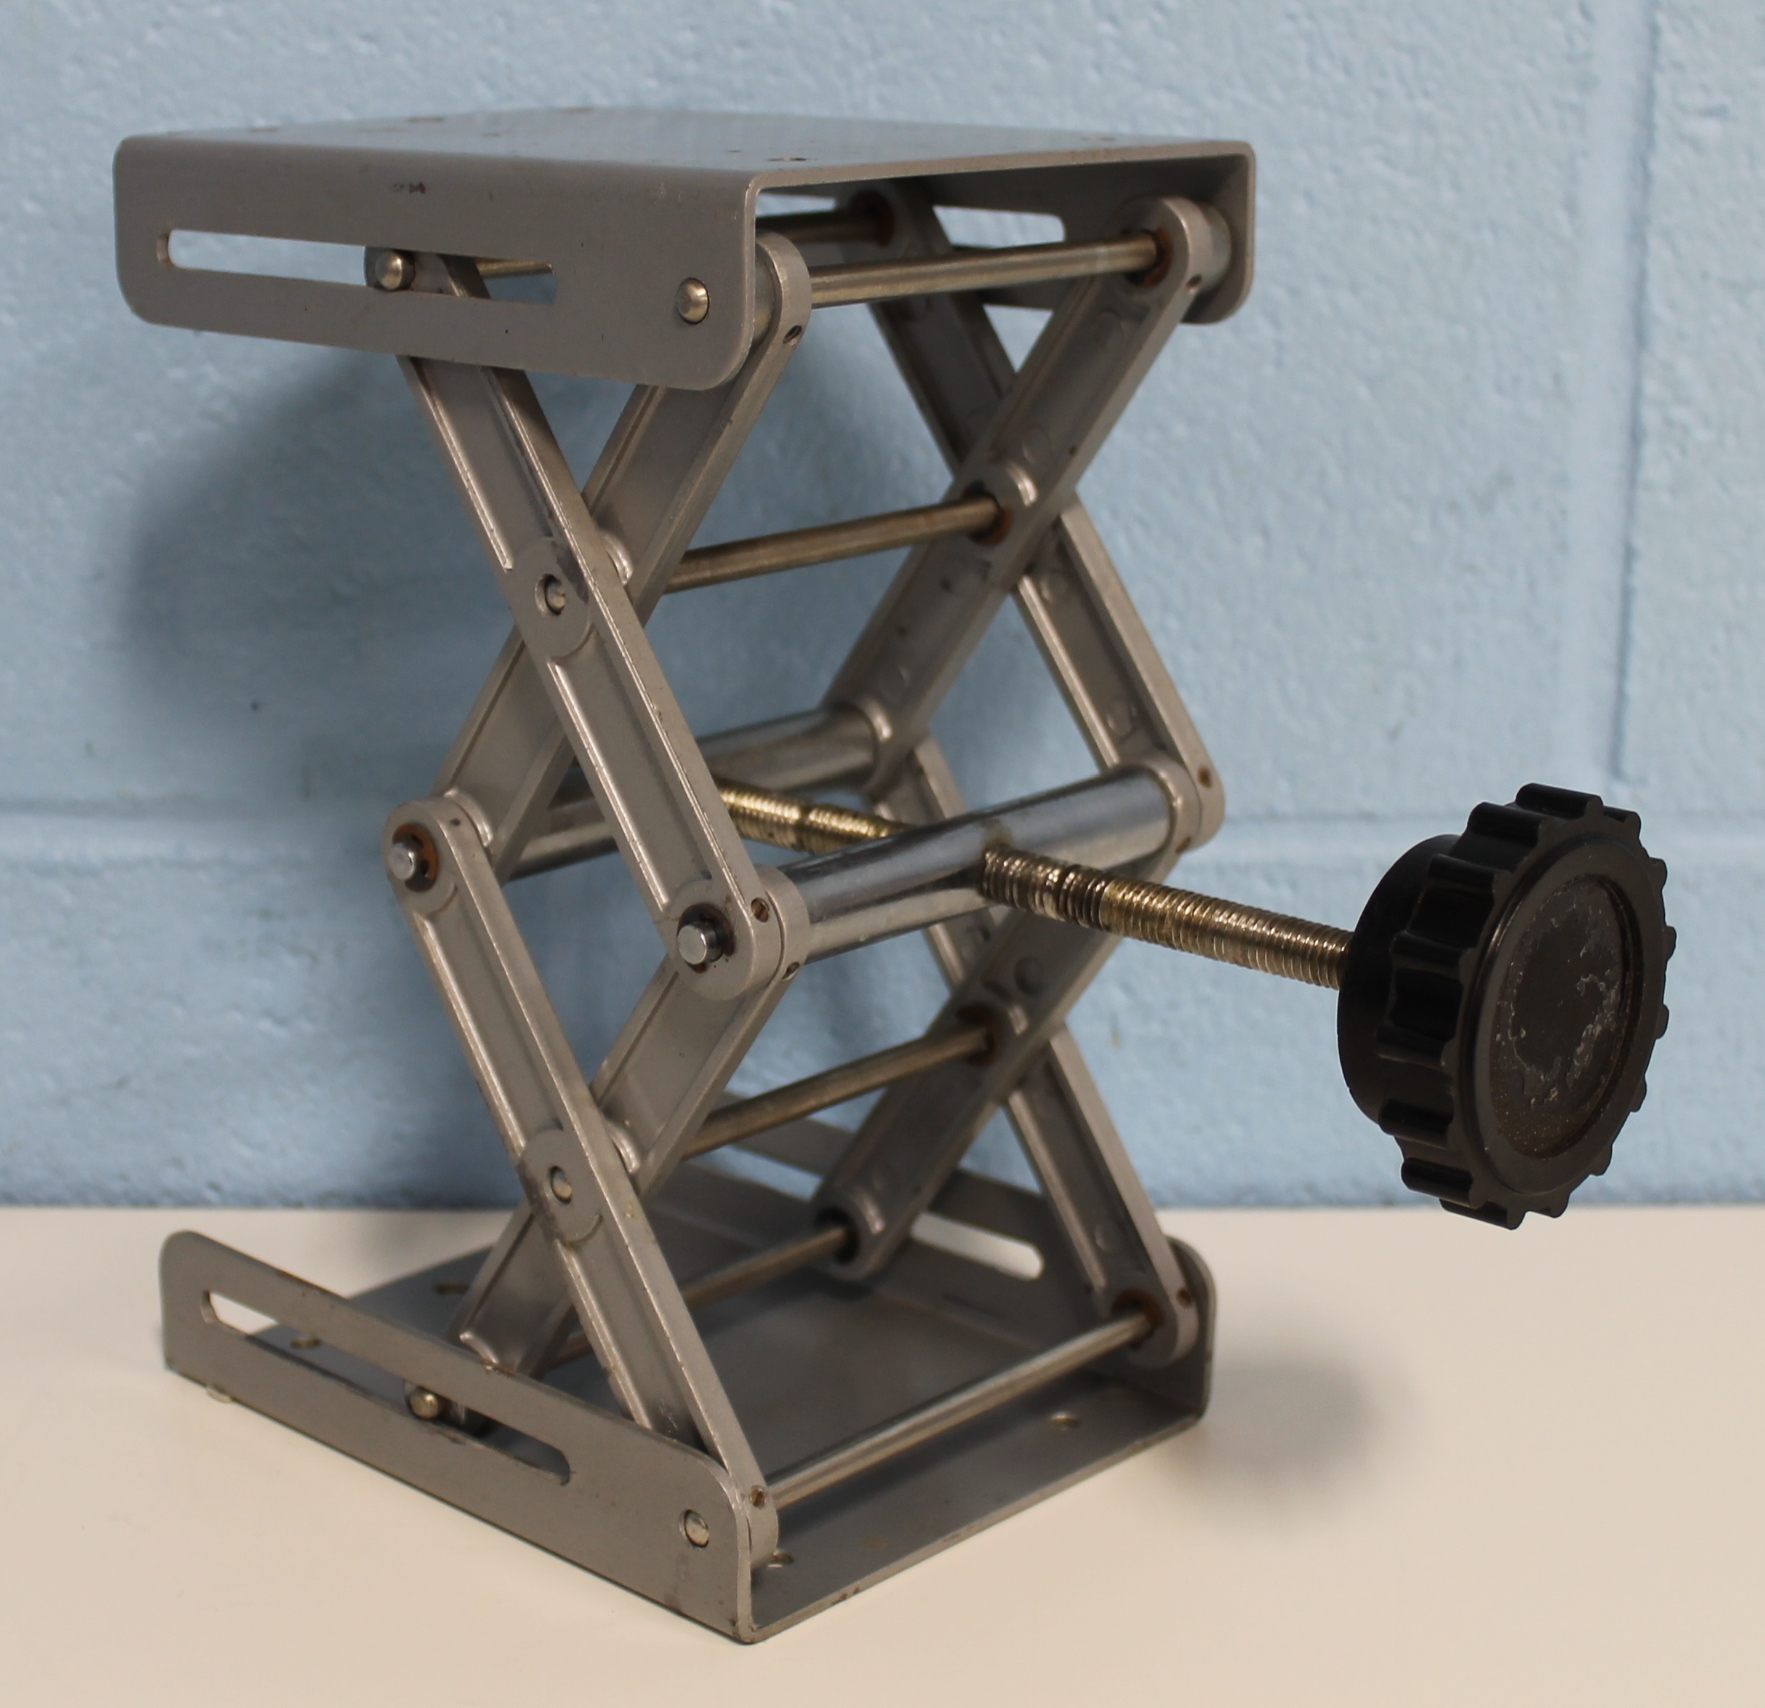 Refurbished VWR Scientific 6 x 4 Support Jack